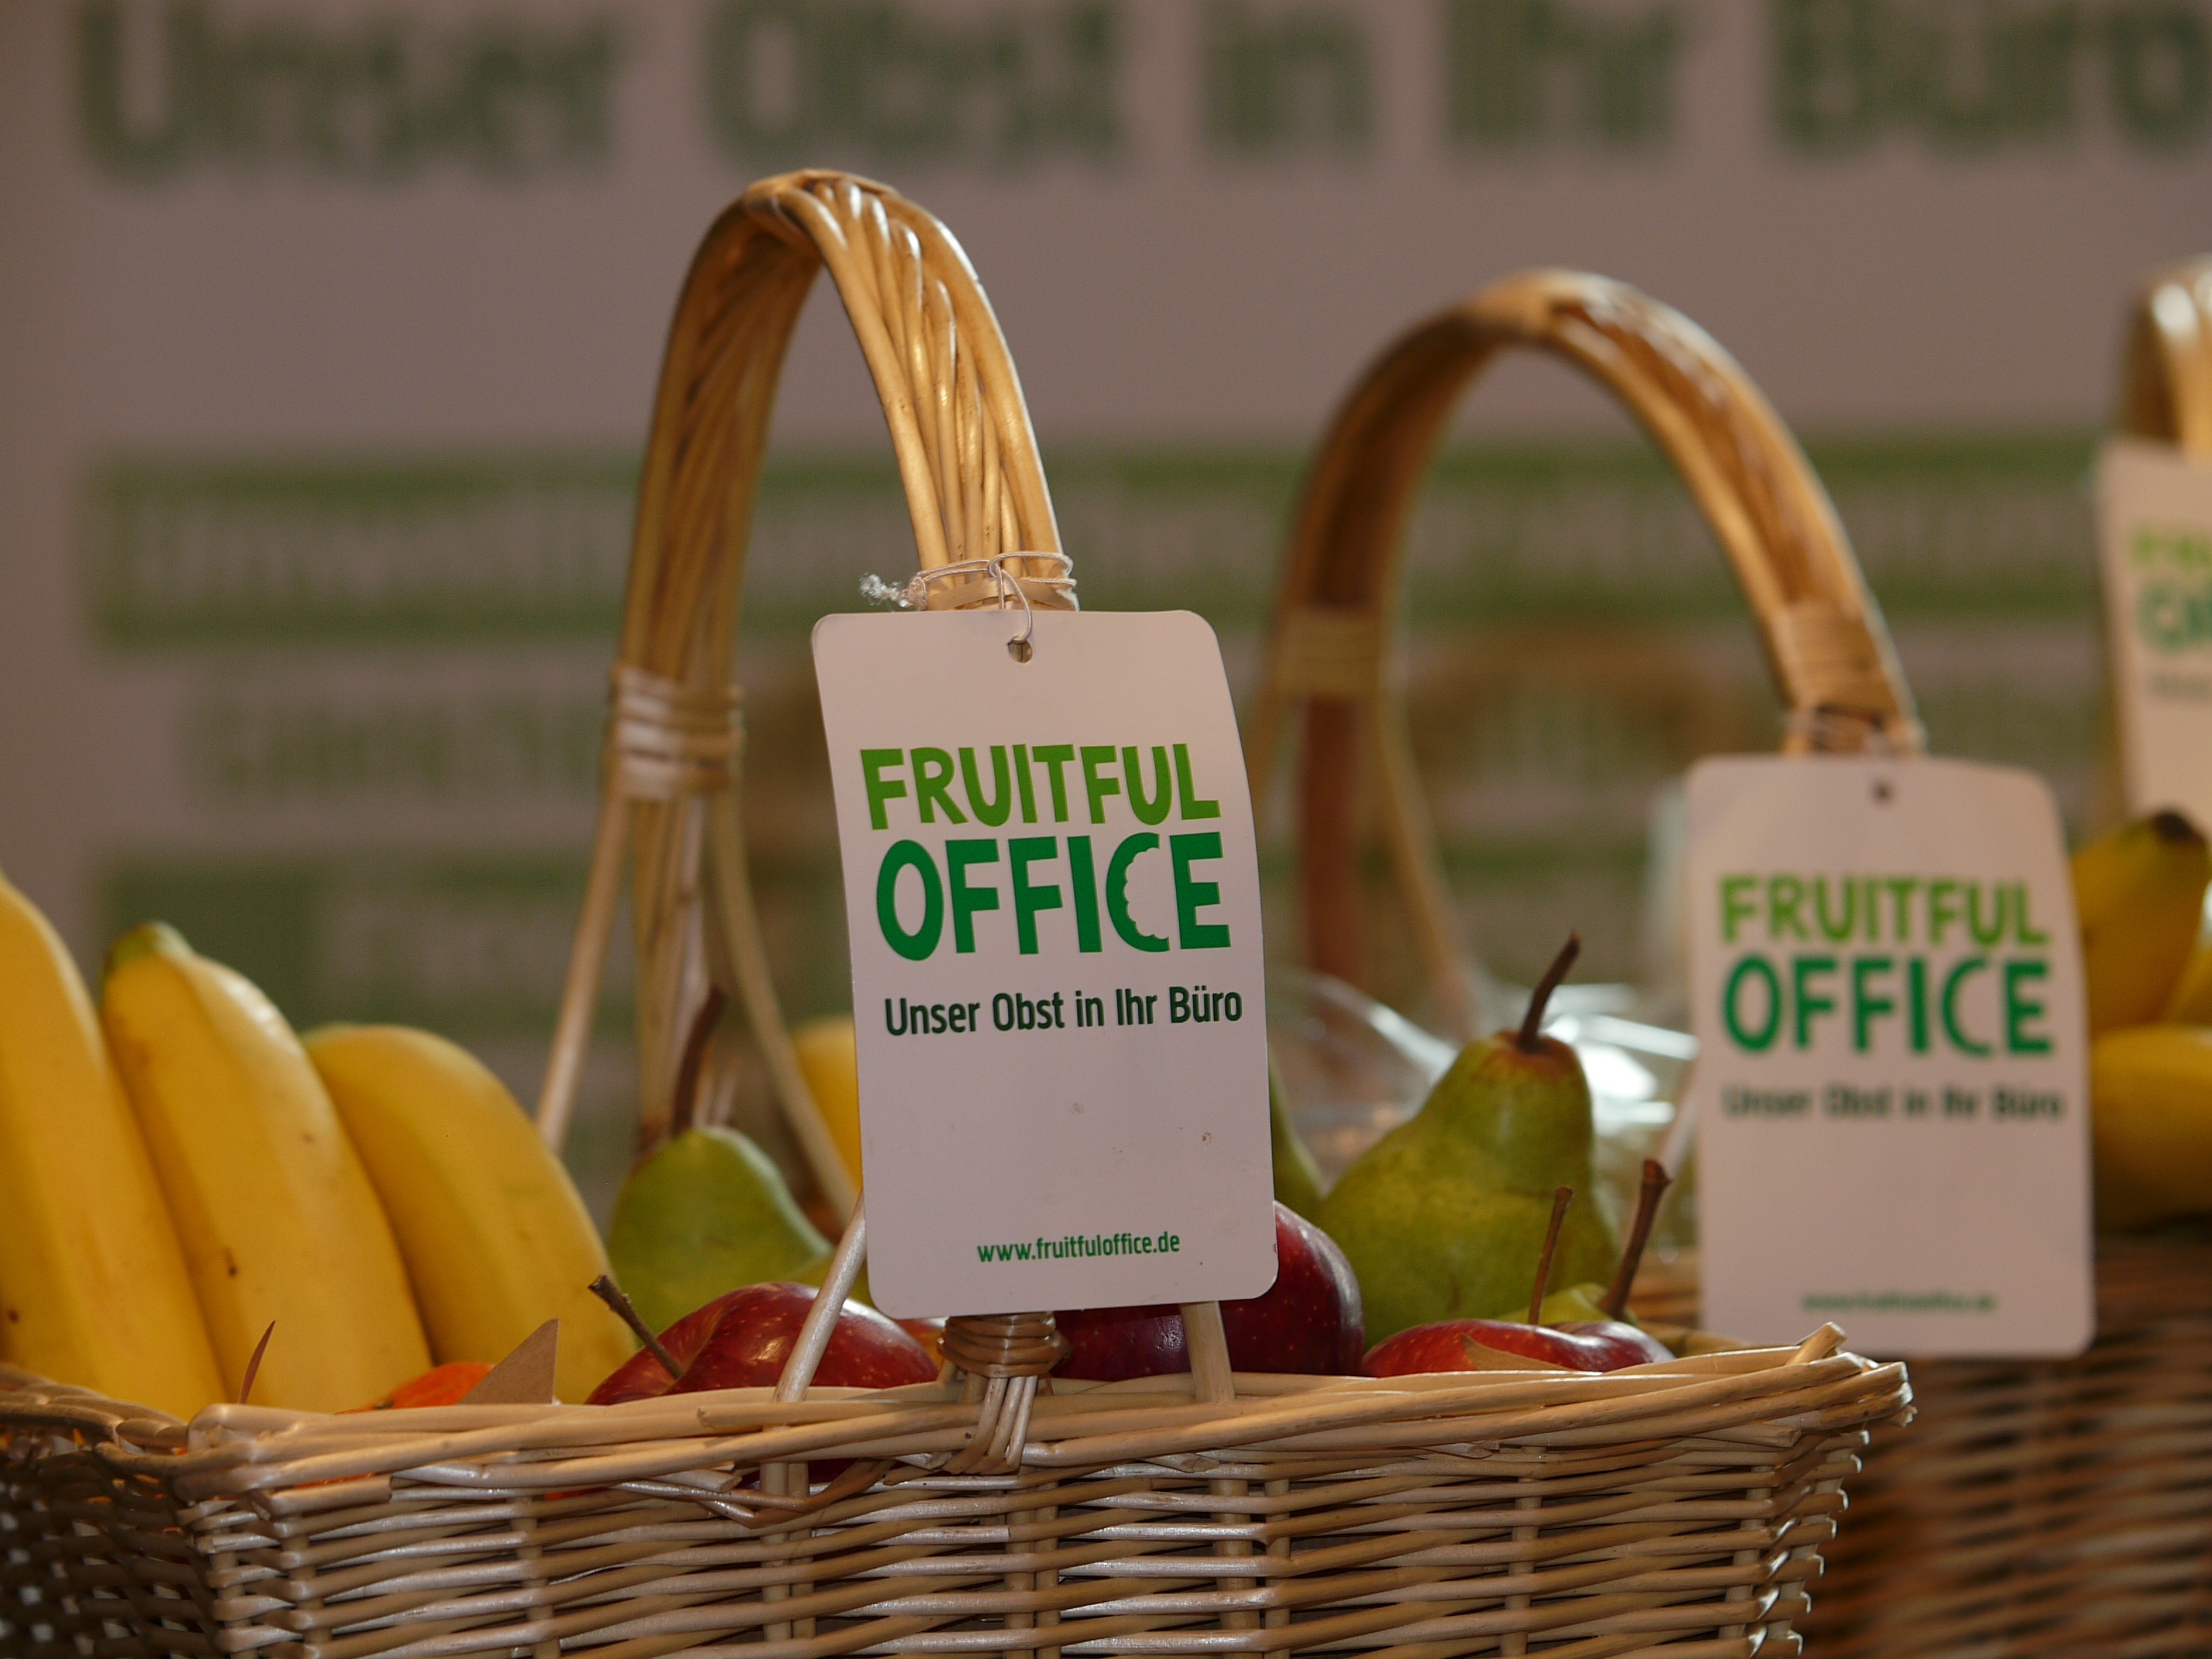 Bildrechte: Fruitful Office